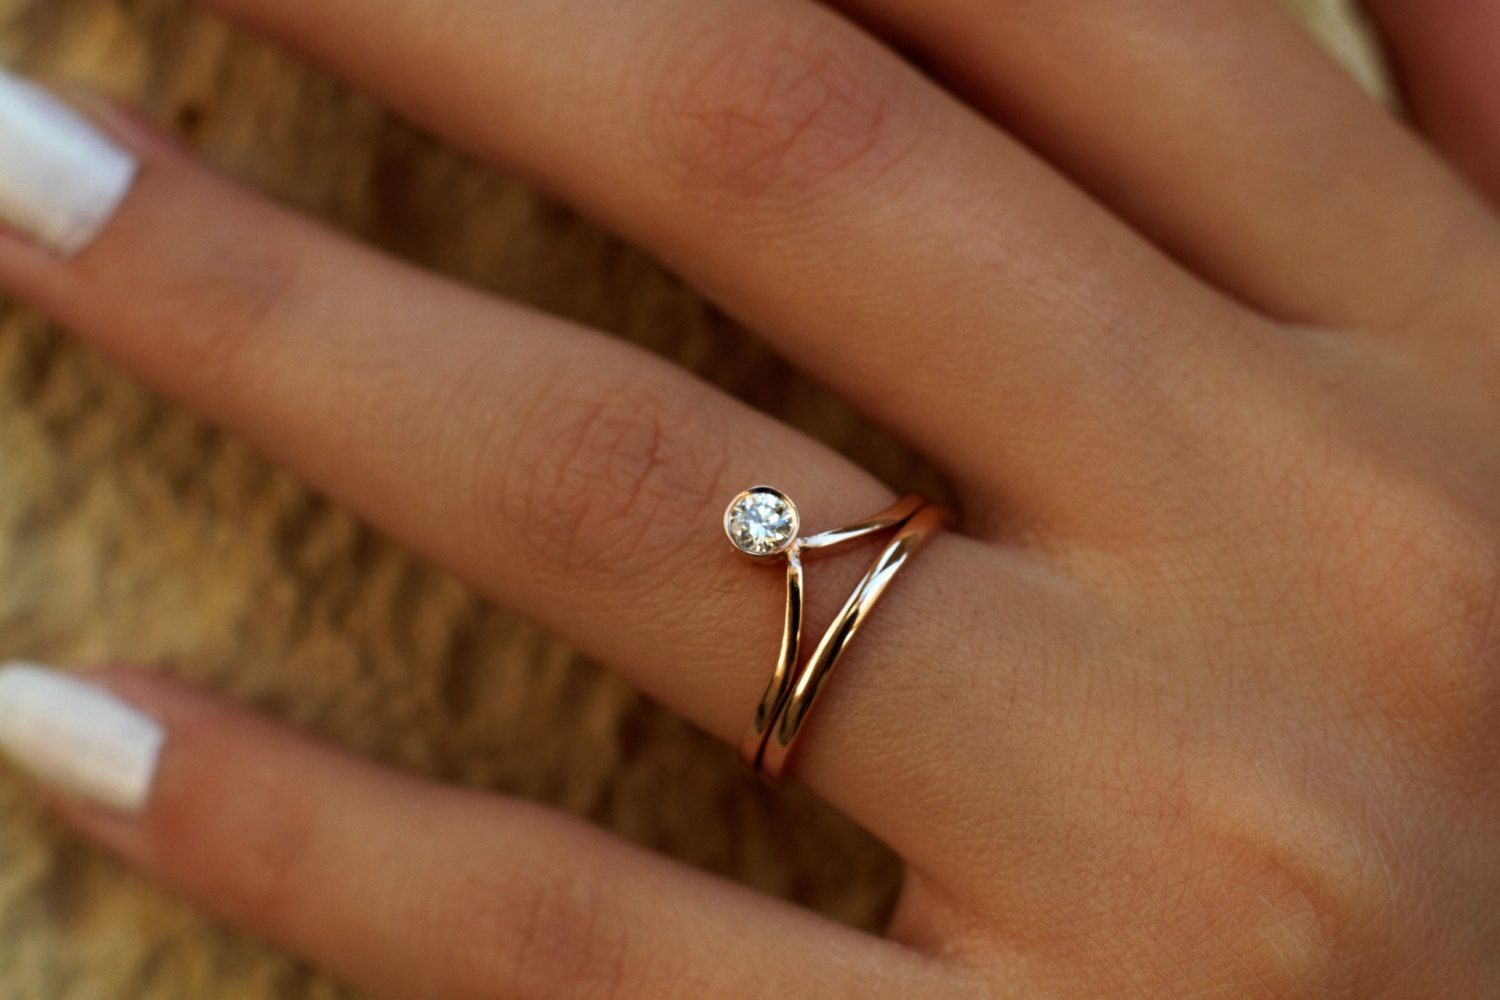 Gold Chevron Engagement Ring Wedding Band Solitaire Rings